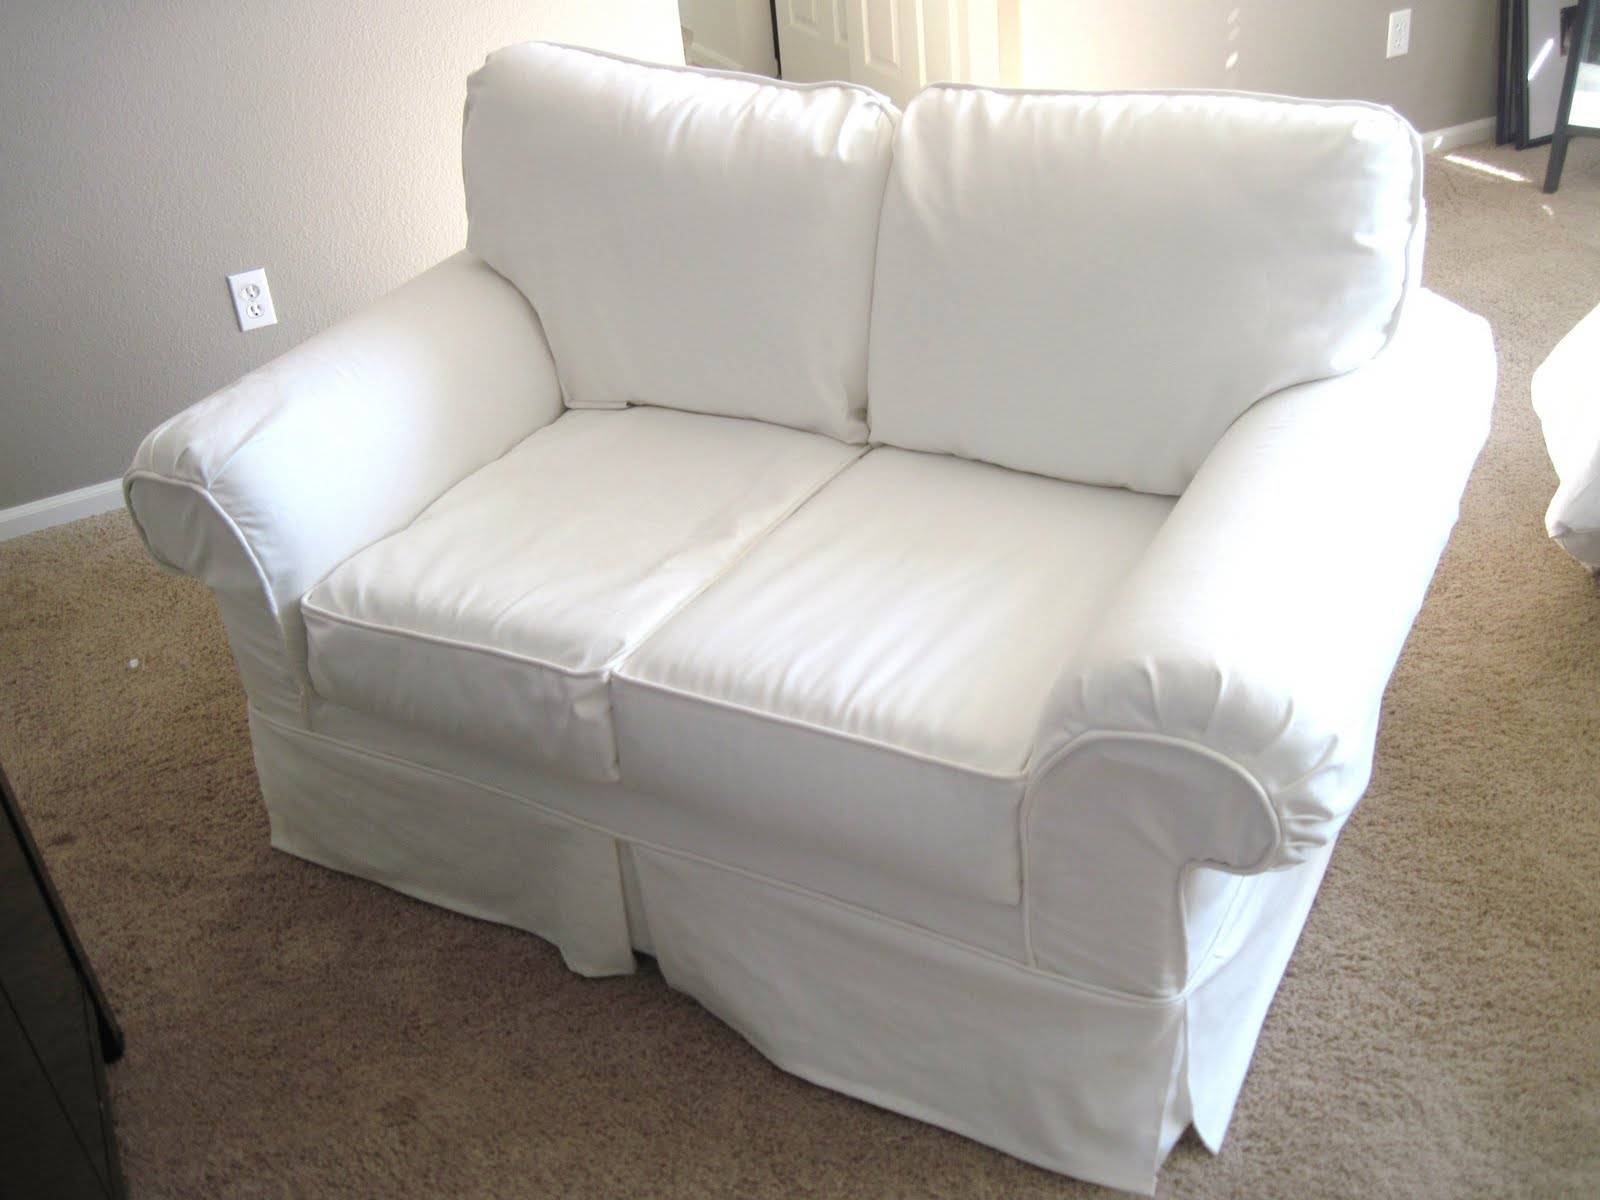 Top 30 of Sofa and Chair Covers